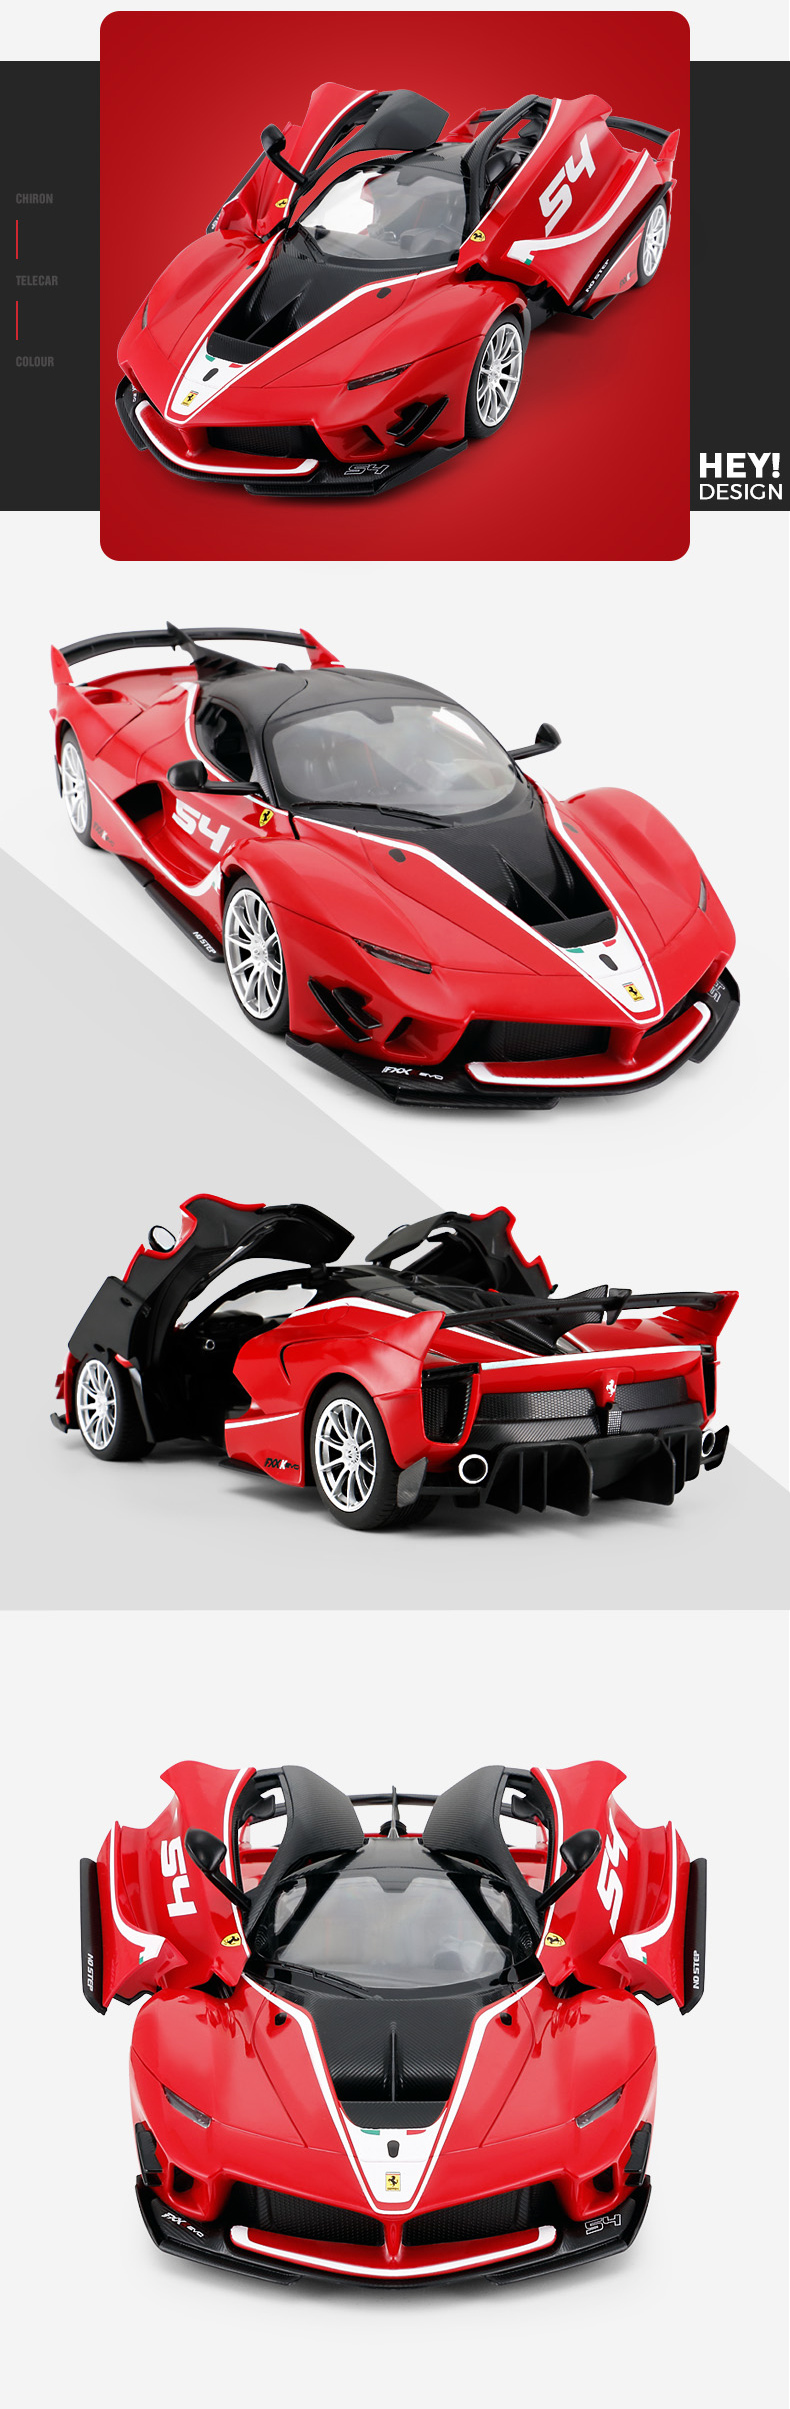 RASTAR 2019 new electric toy Ferrari plastic red rc car with shock absorber